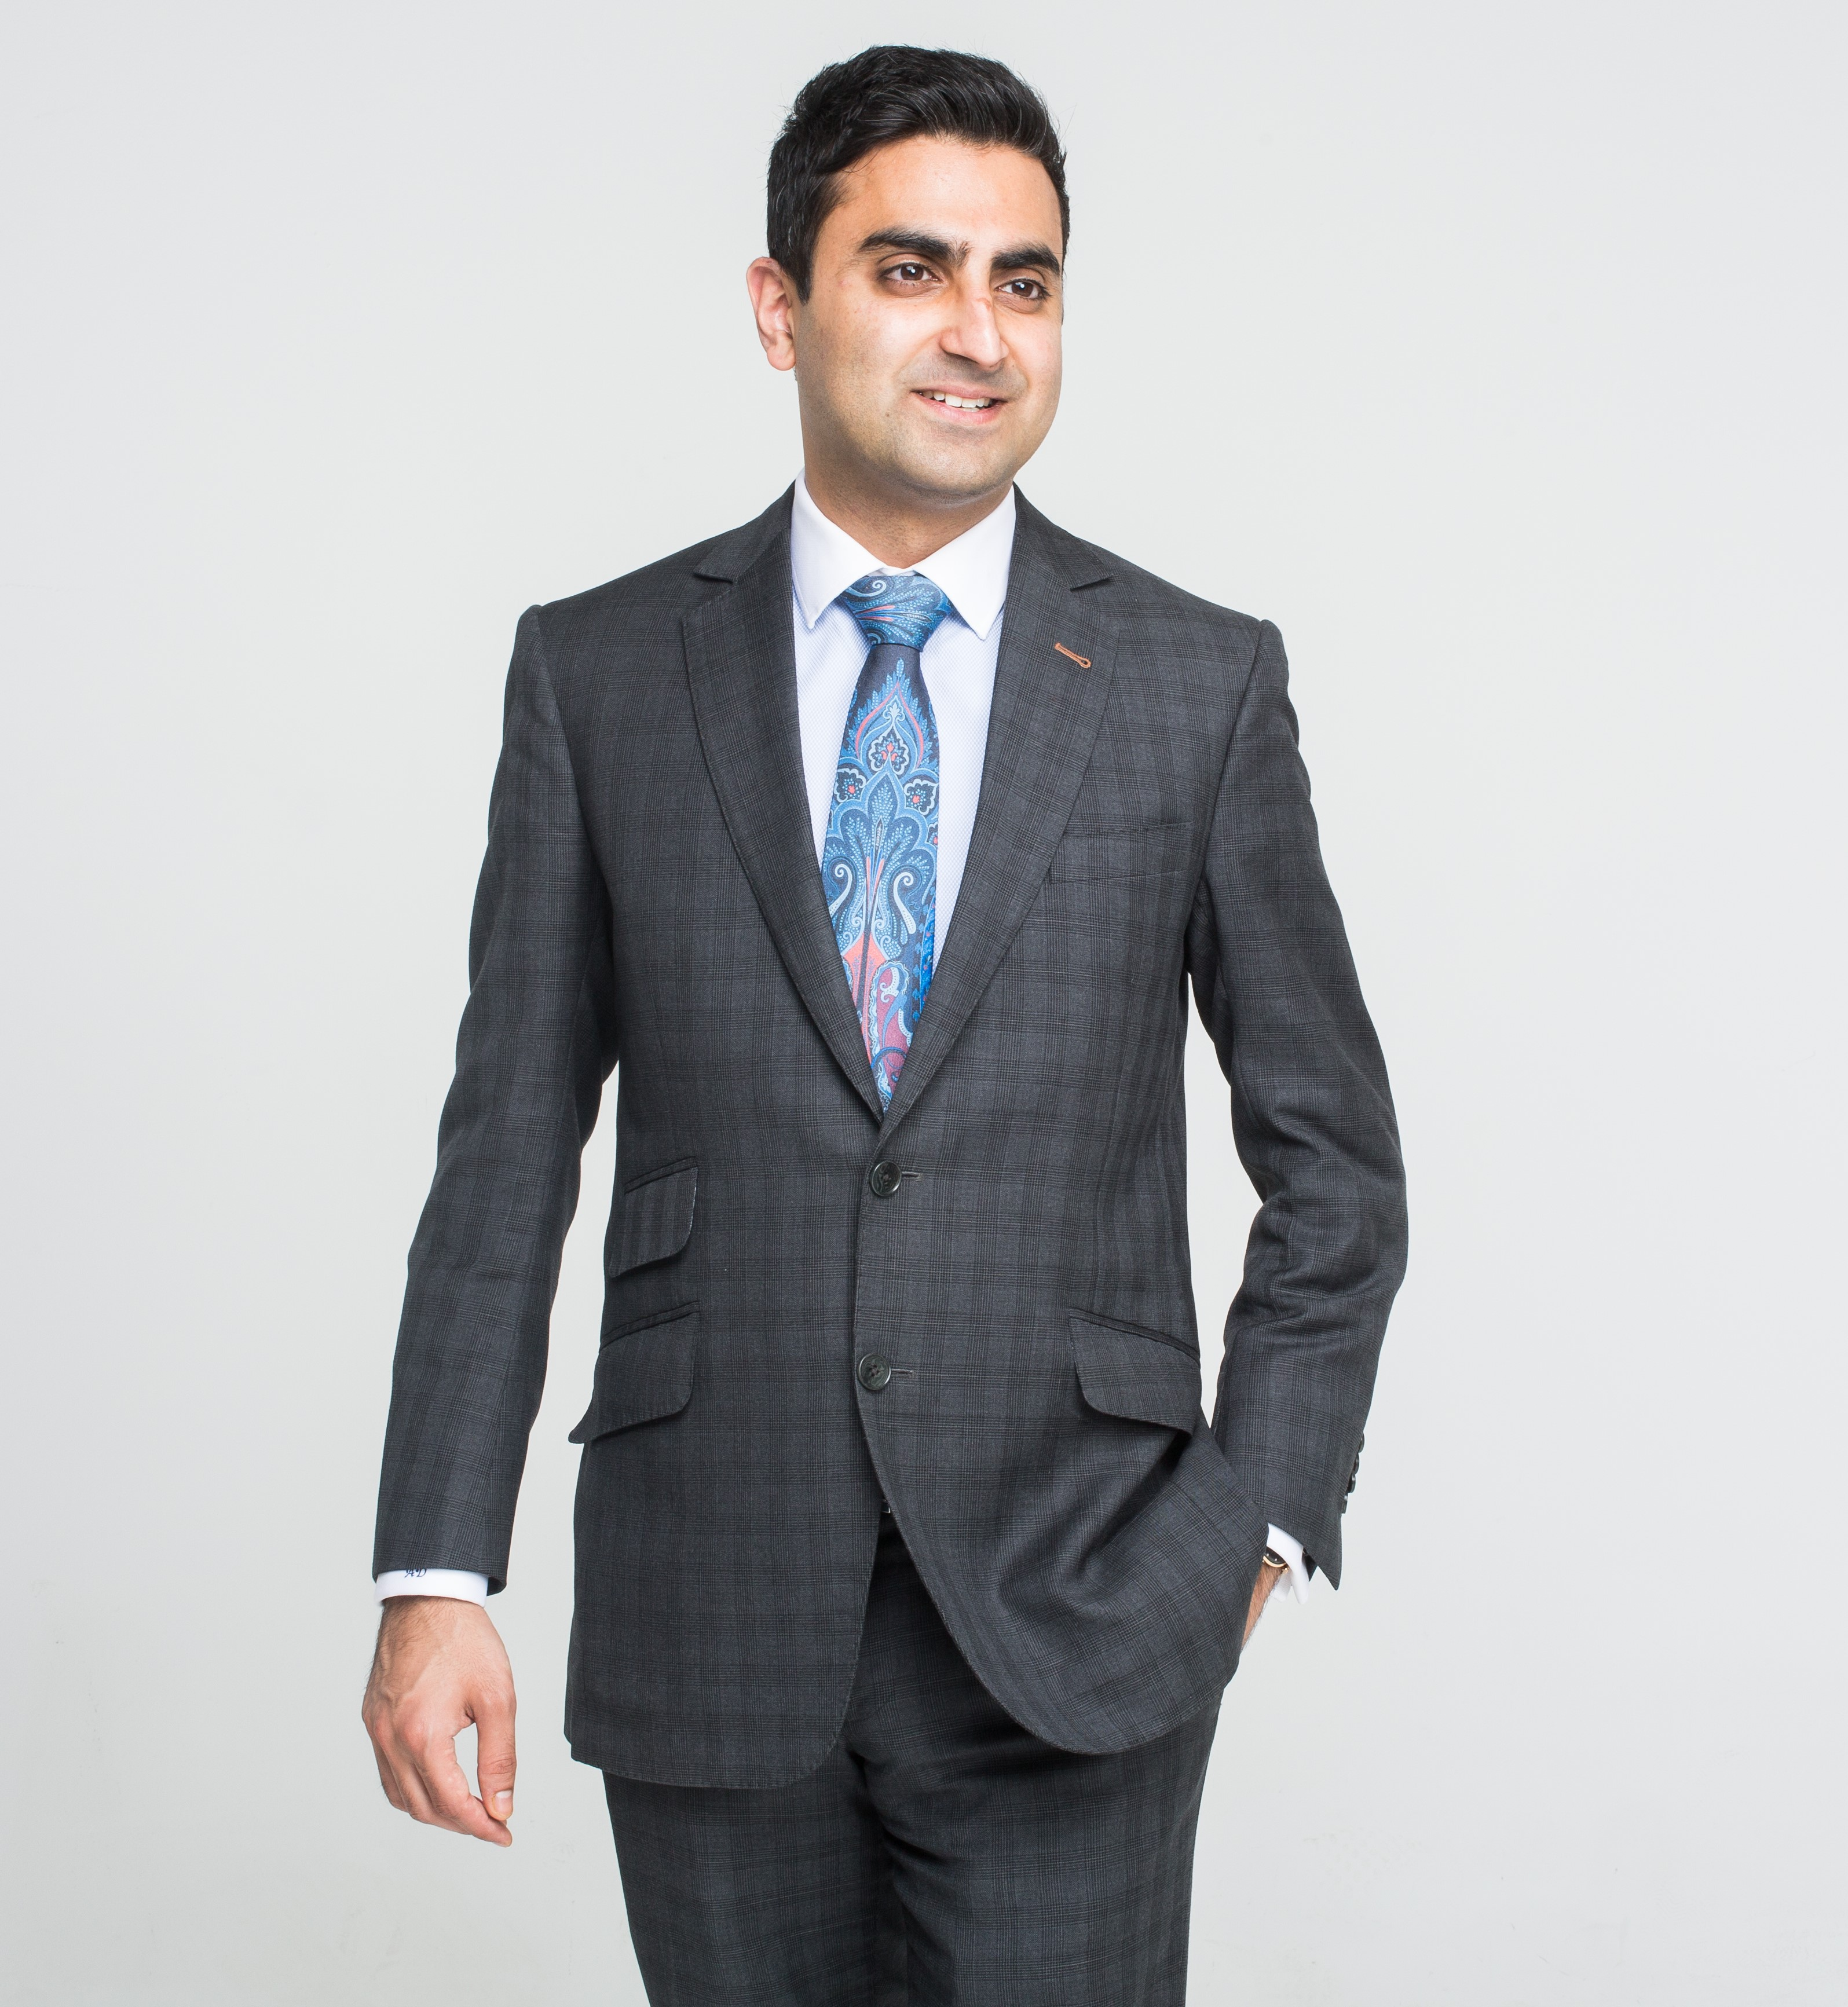 Power Player: Arjun Dhanak Reveals His Plans to Take the Kanz Jewels Legacy Forward